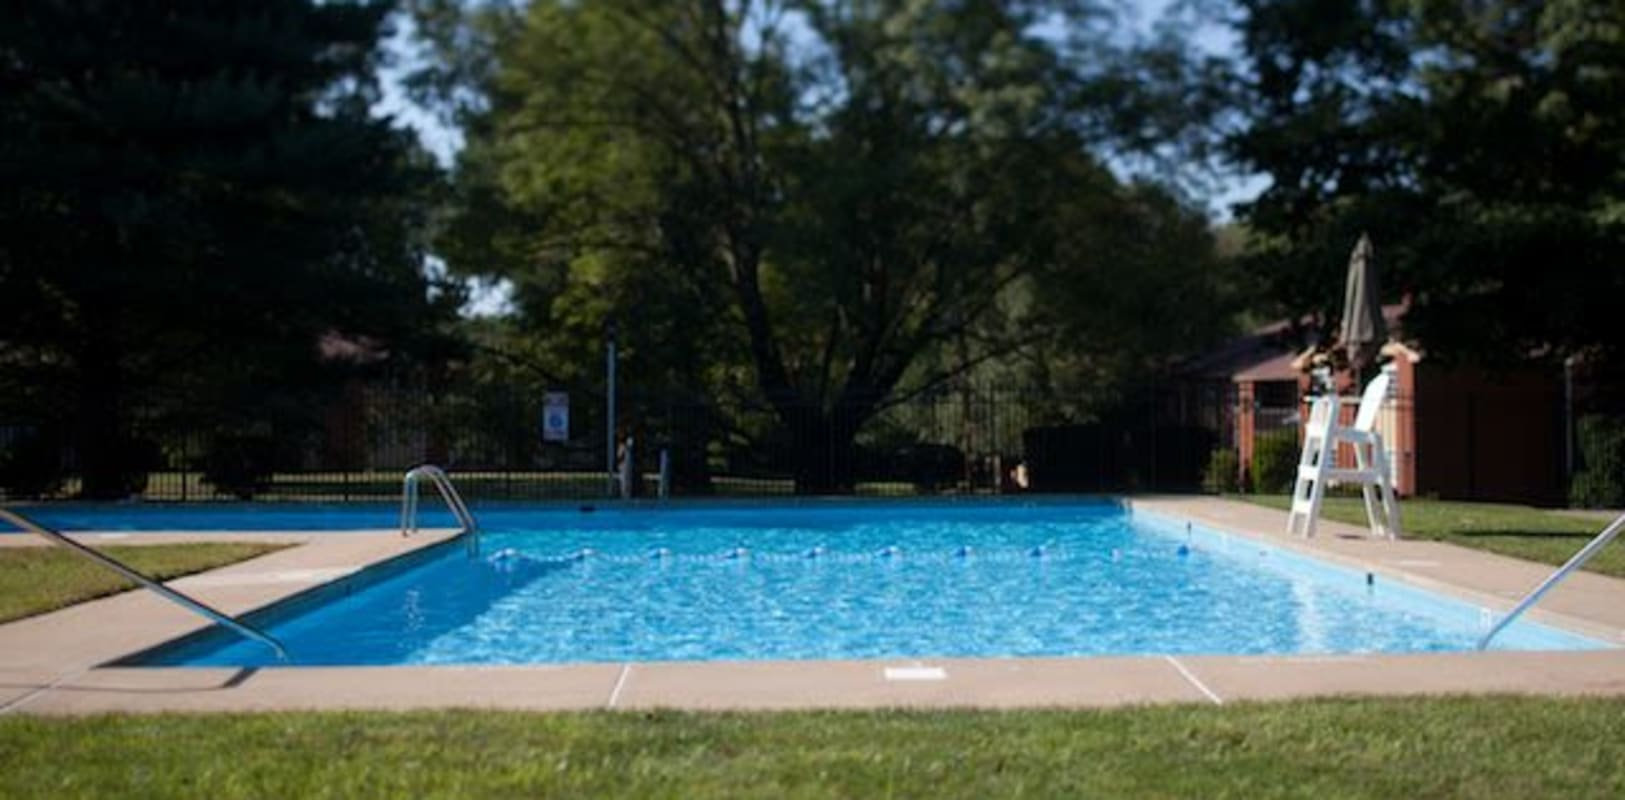 Sparkling swimming pool at Eastgate Apartments in Ewing, New Jersey